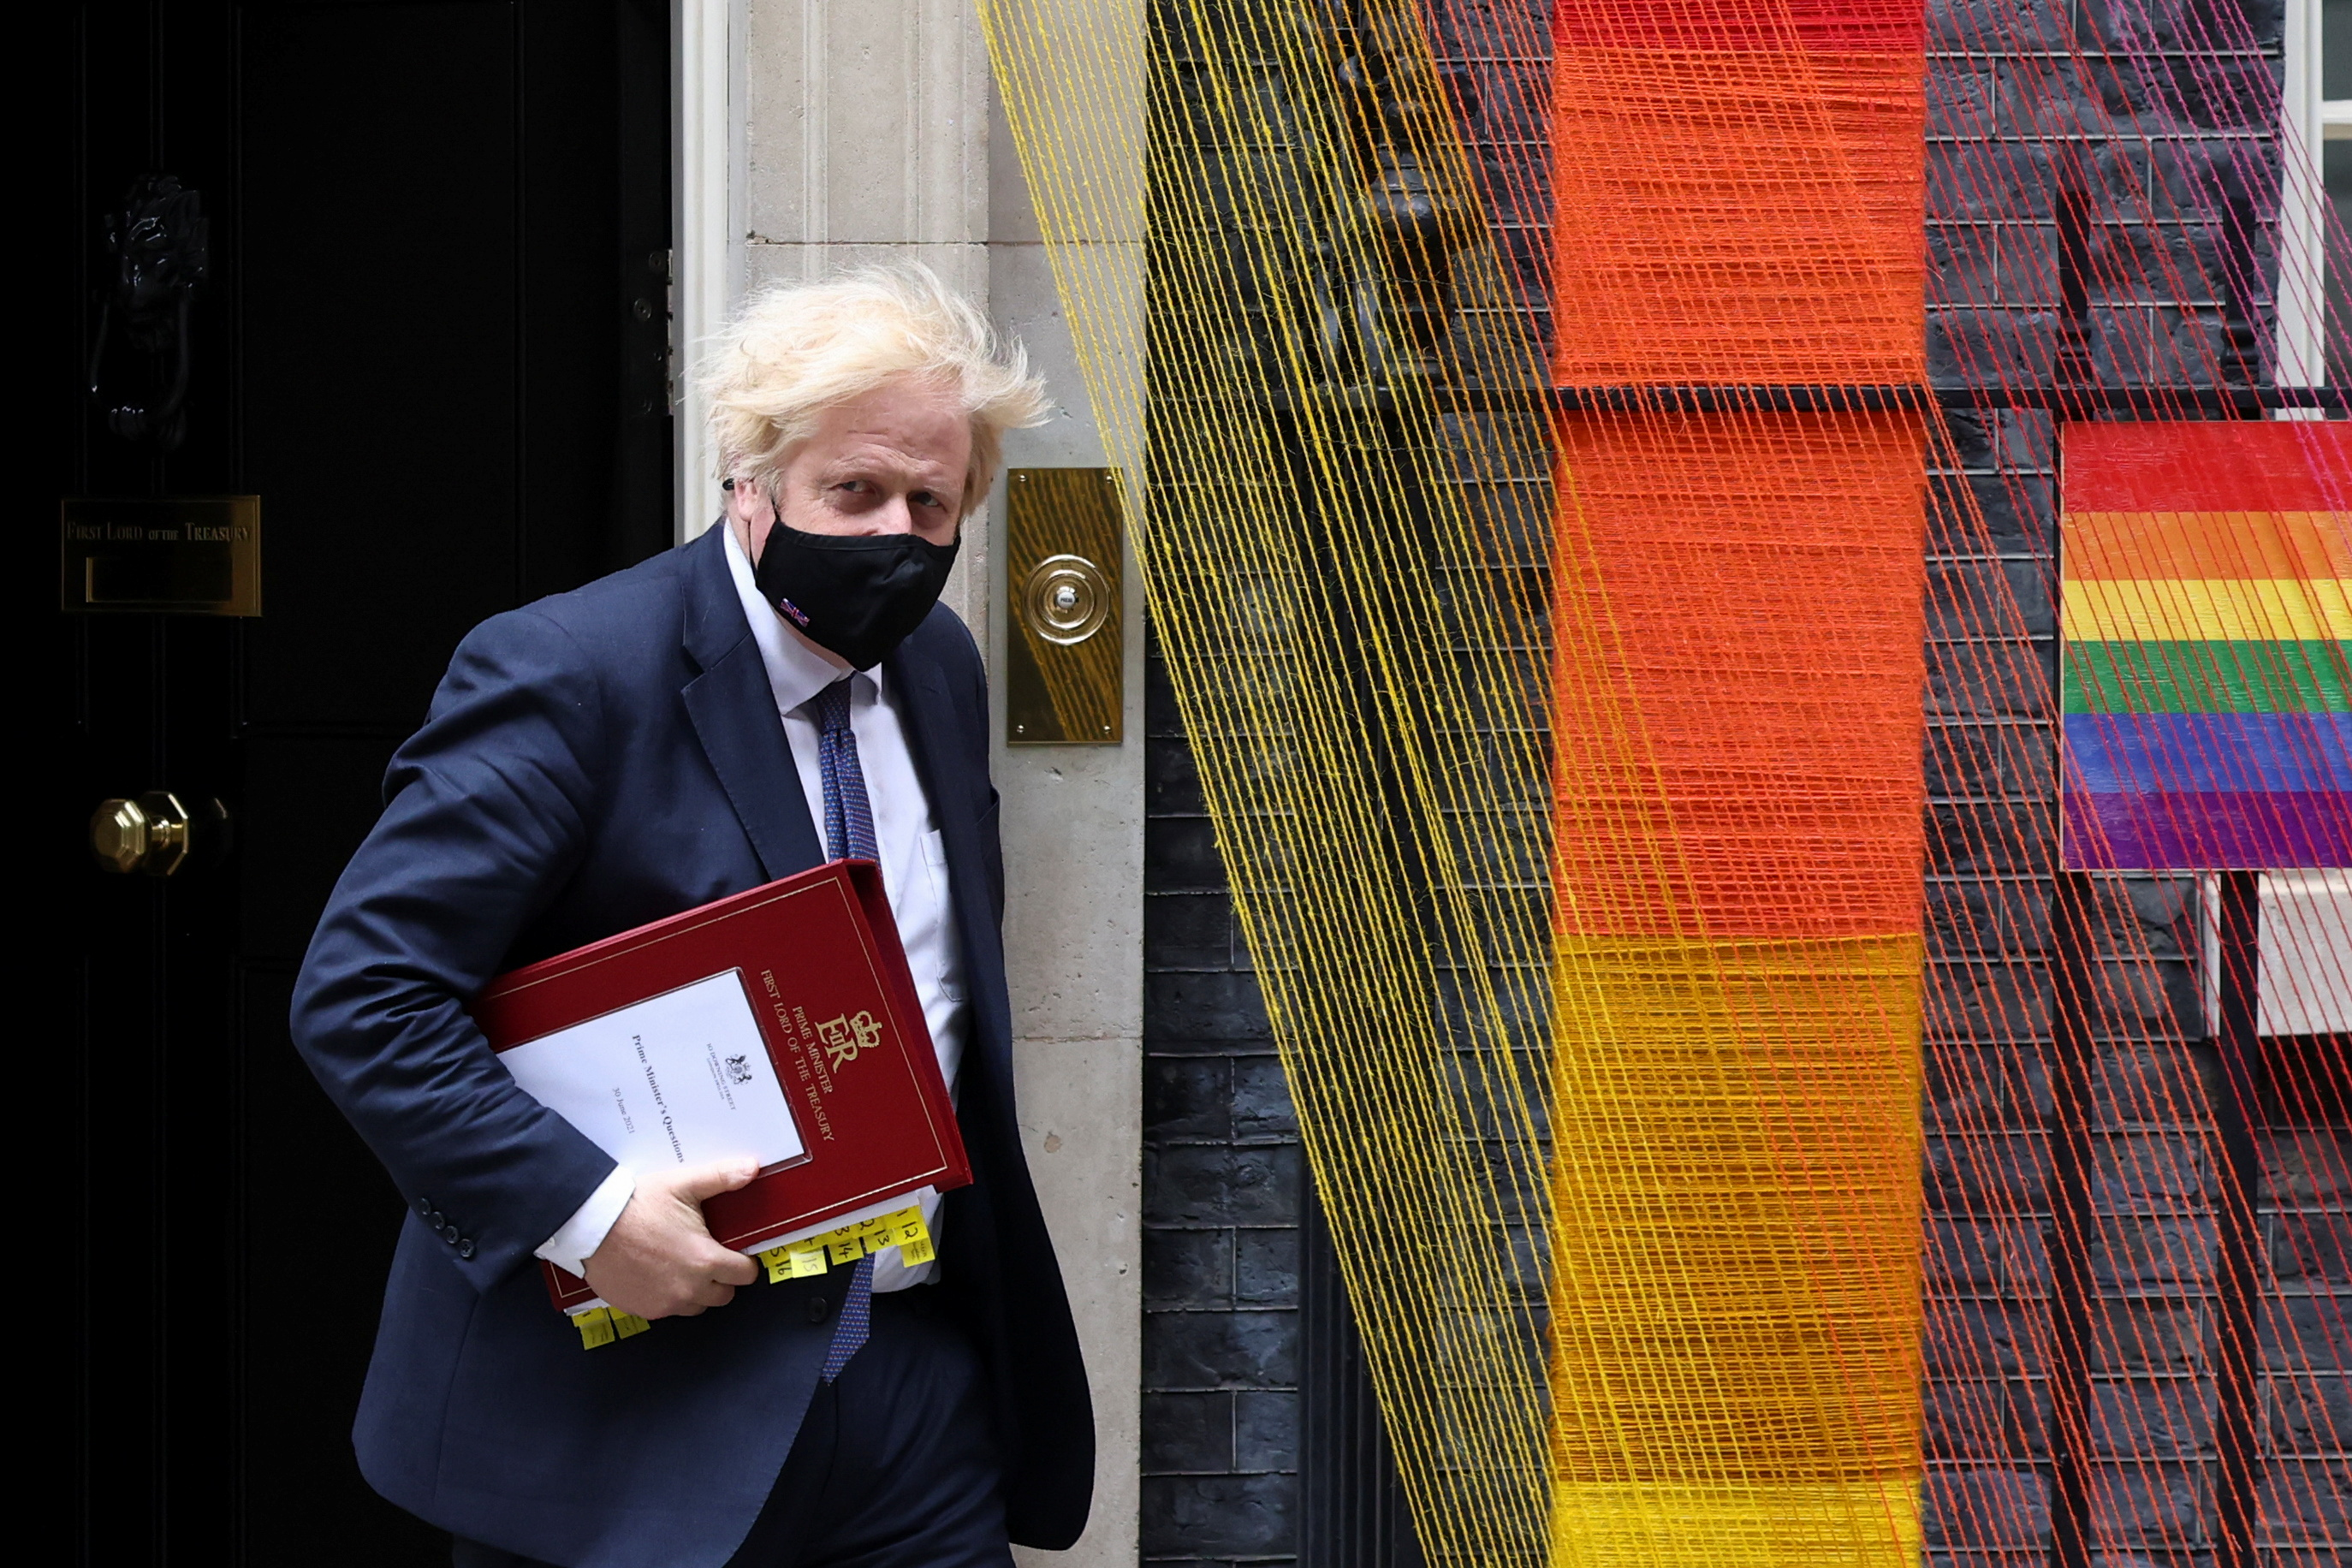 Britain's Prime Minister Boris Johnson walks past a rainbow arch by Artists Louisa Loizeau and Hattie Newman that has been installed over the door at Number 10 Downing Street, in London, Britain, June 30, 2021. REUTERS/Henry Nicholls